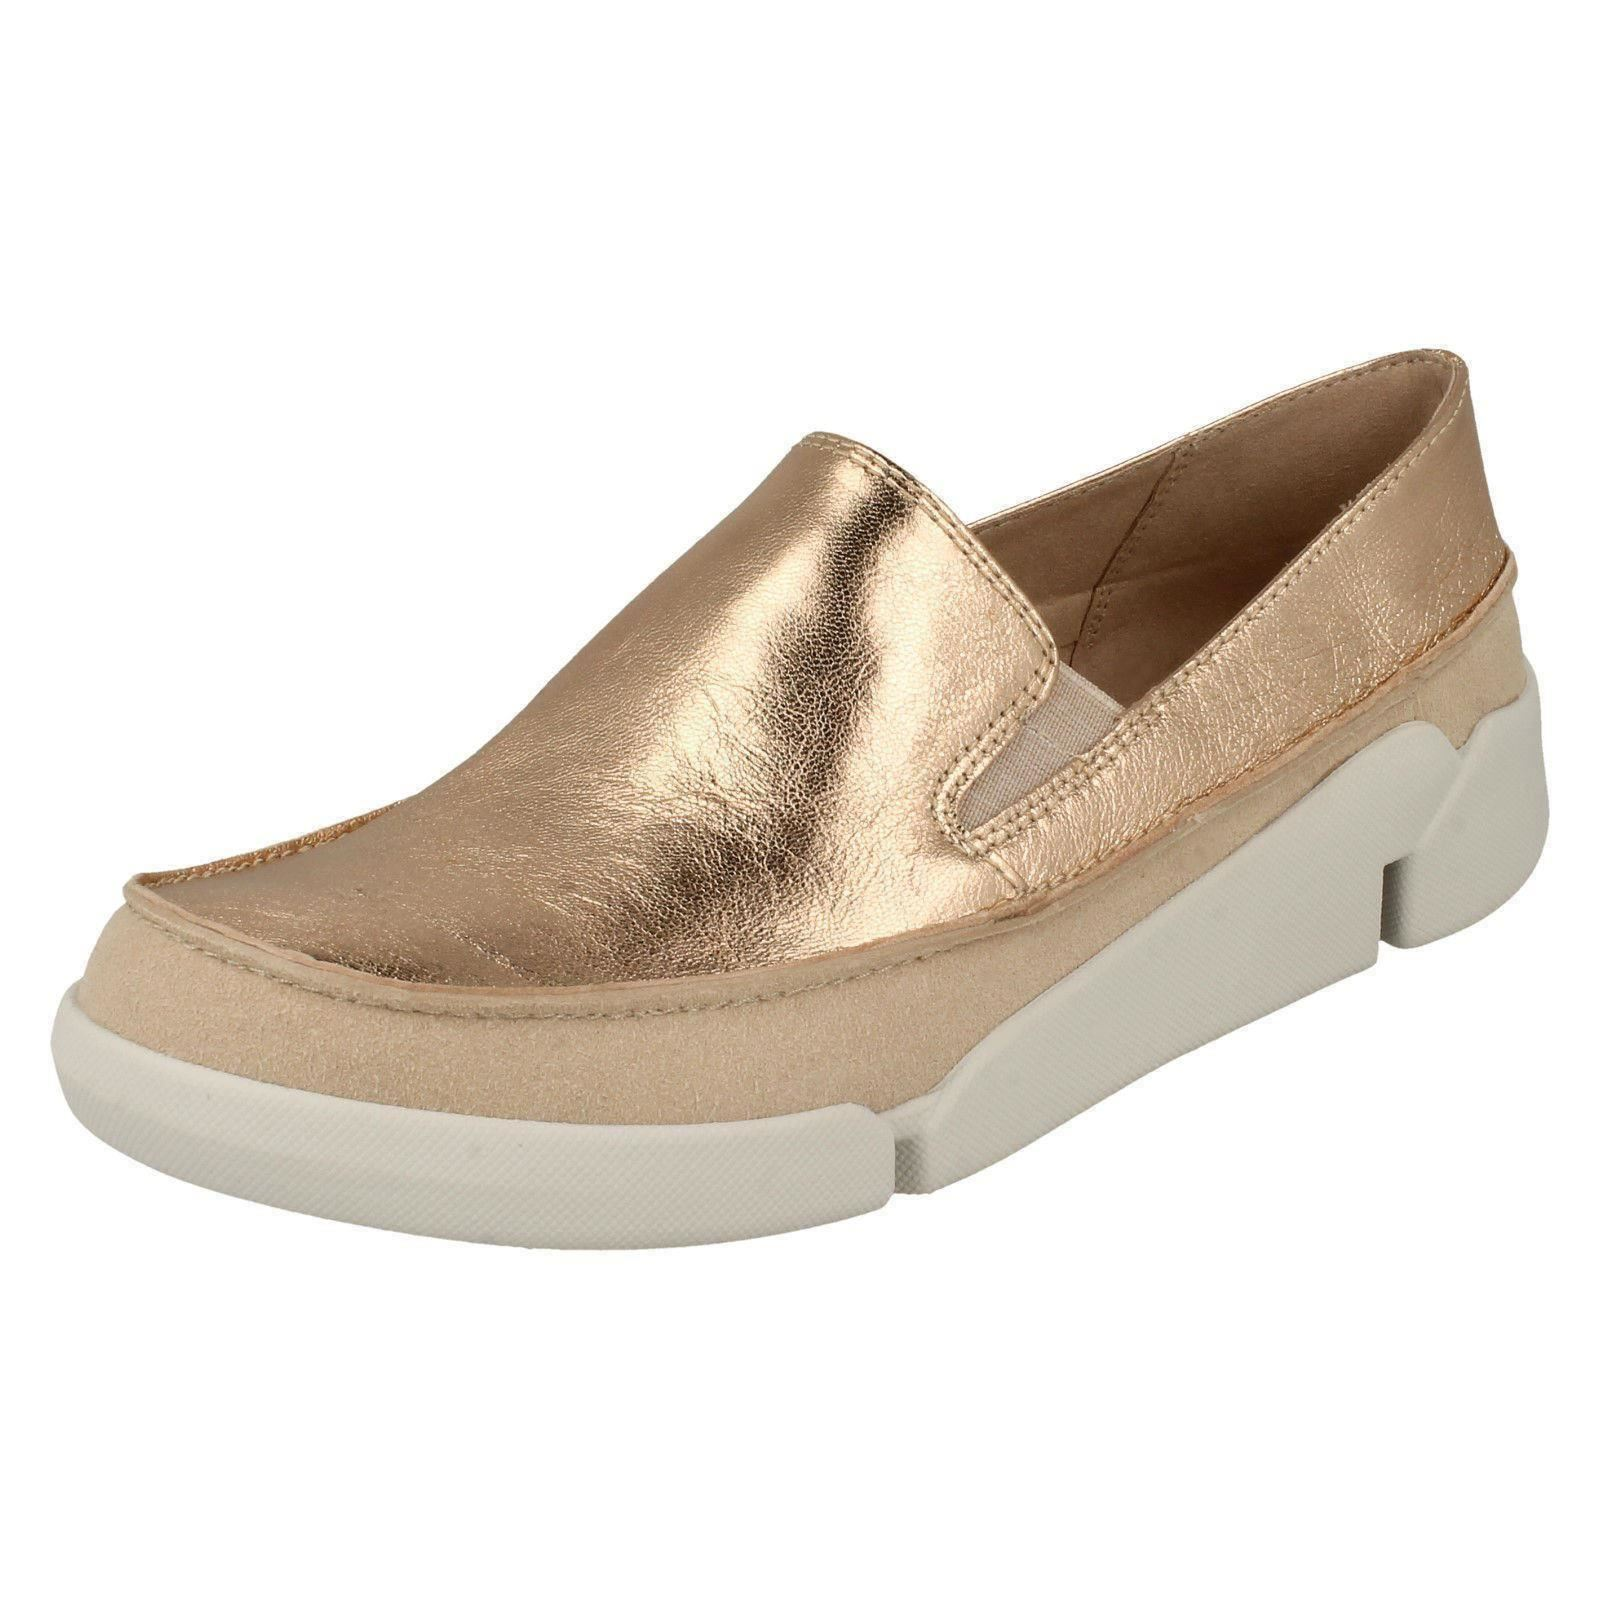 CLARKS Womens Tri Skipp Loafers Shoes